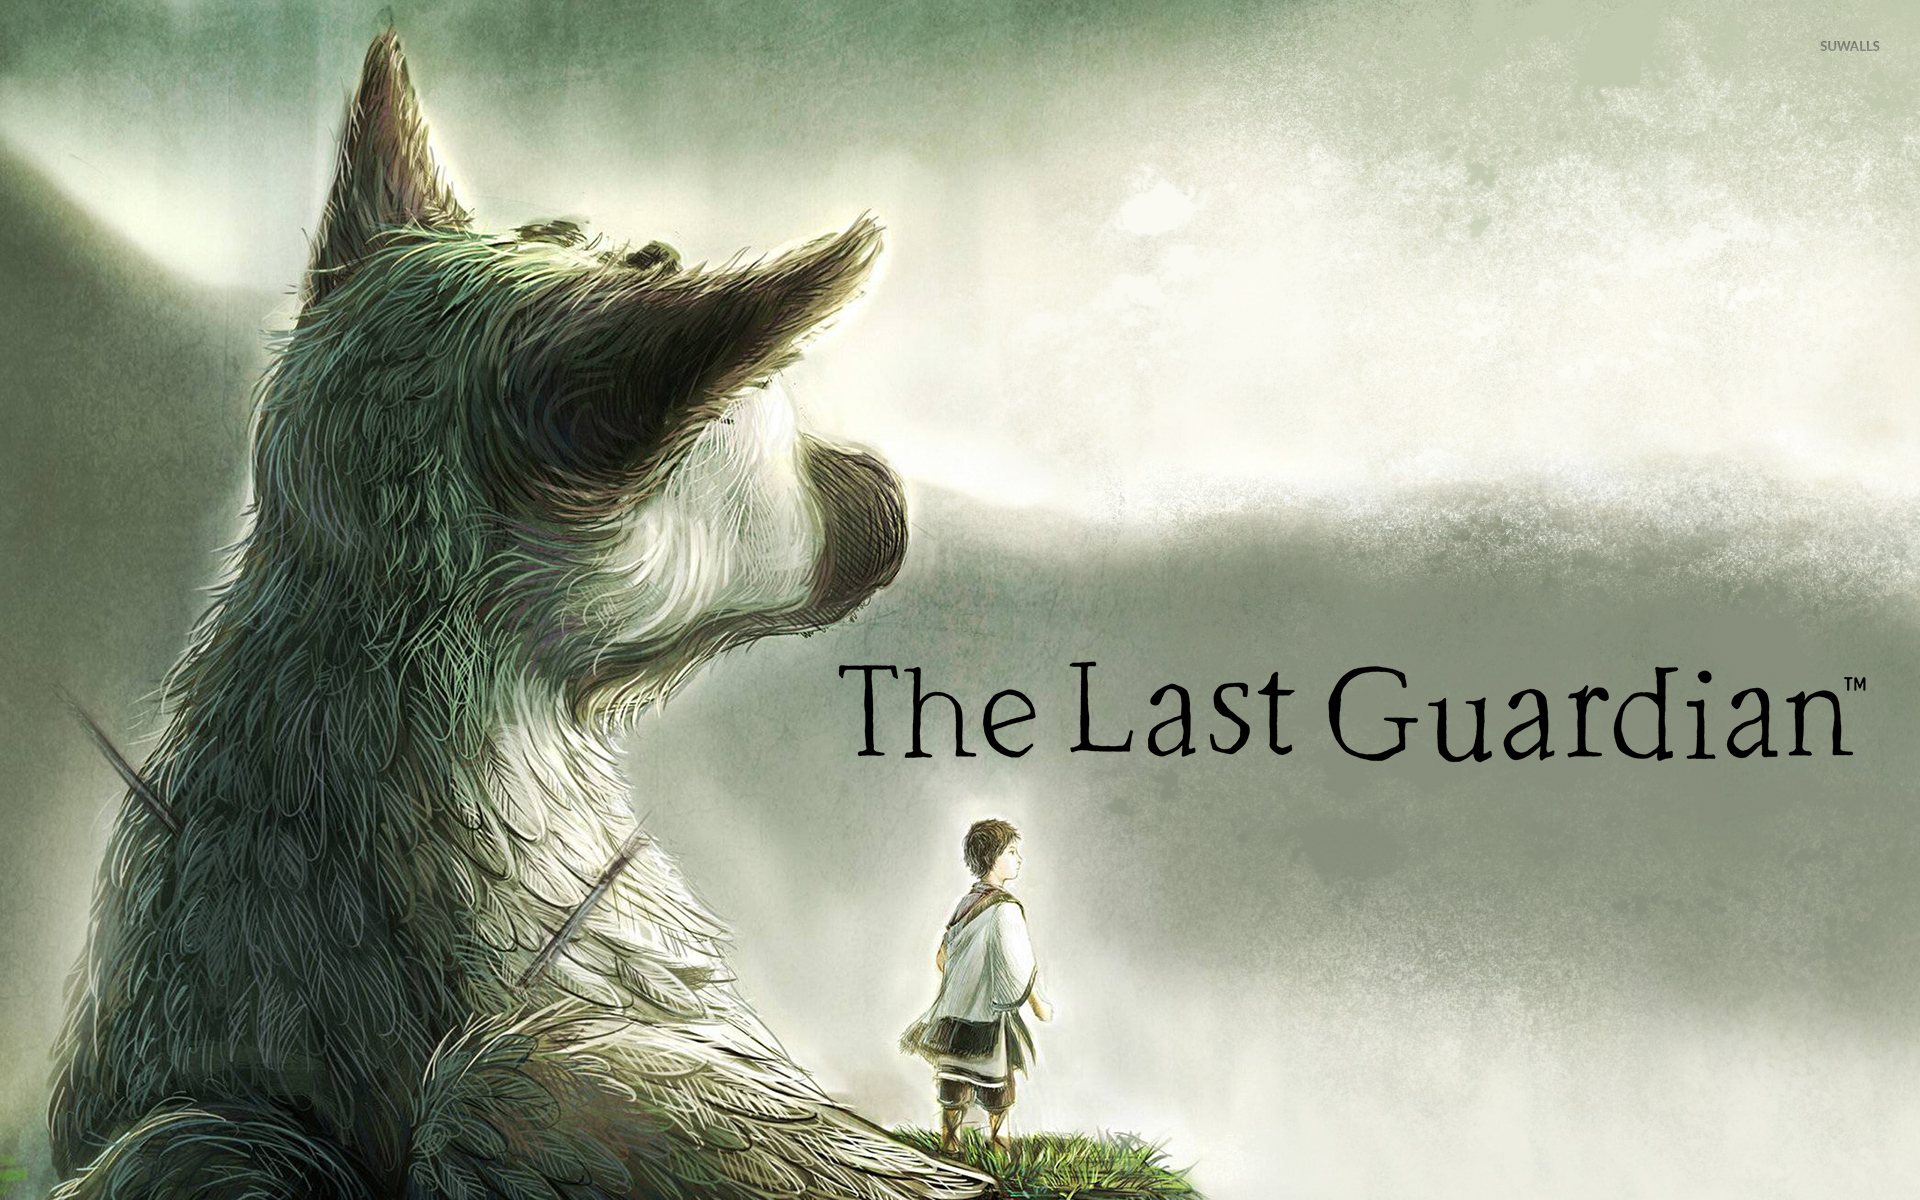 trico and the boy in the last gu